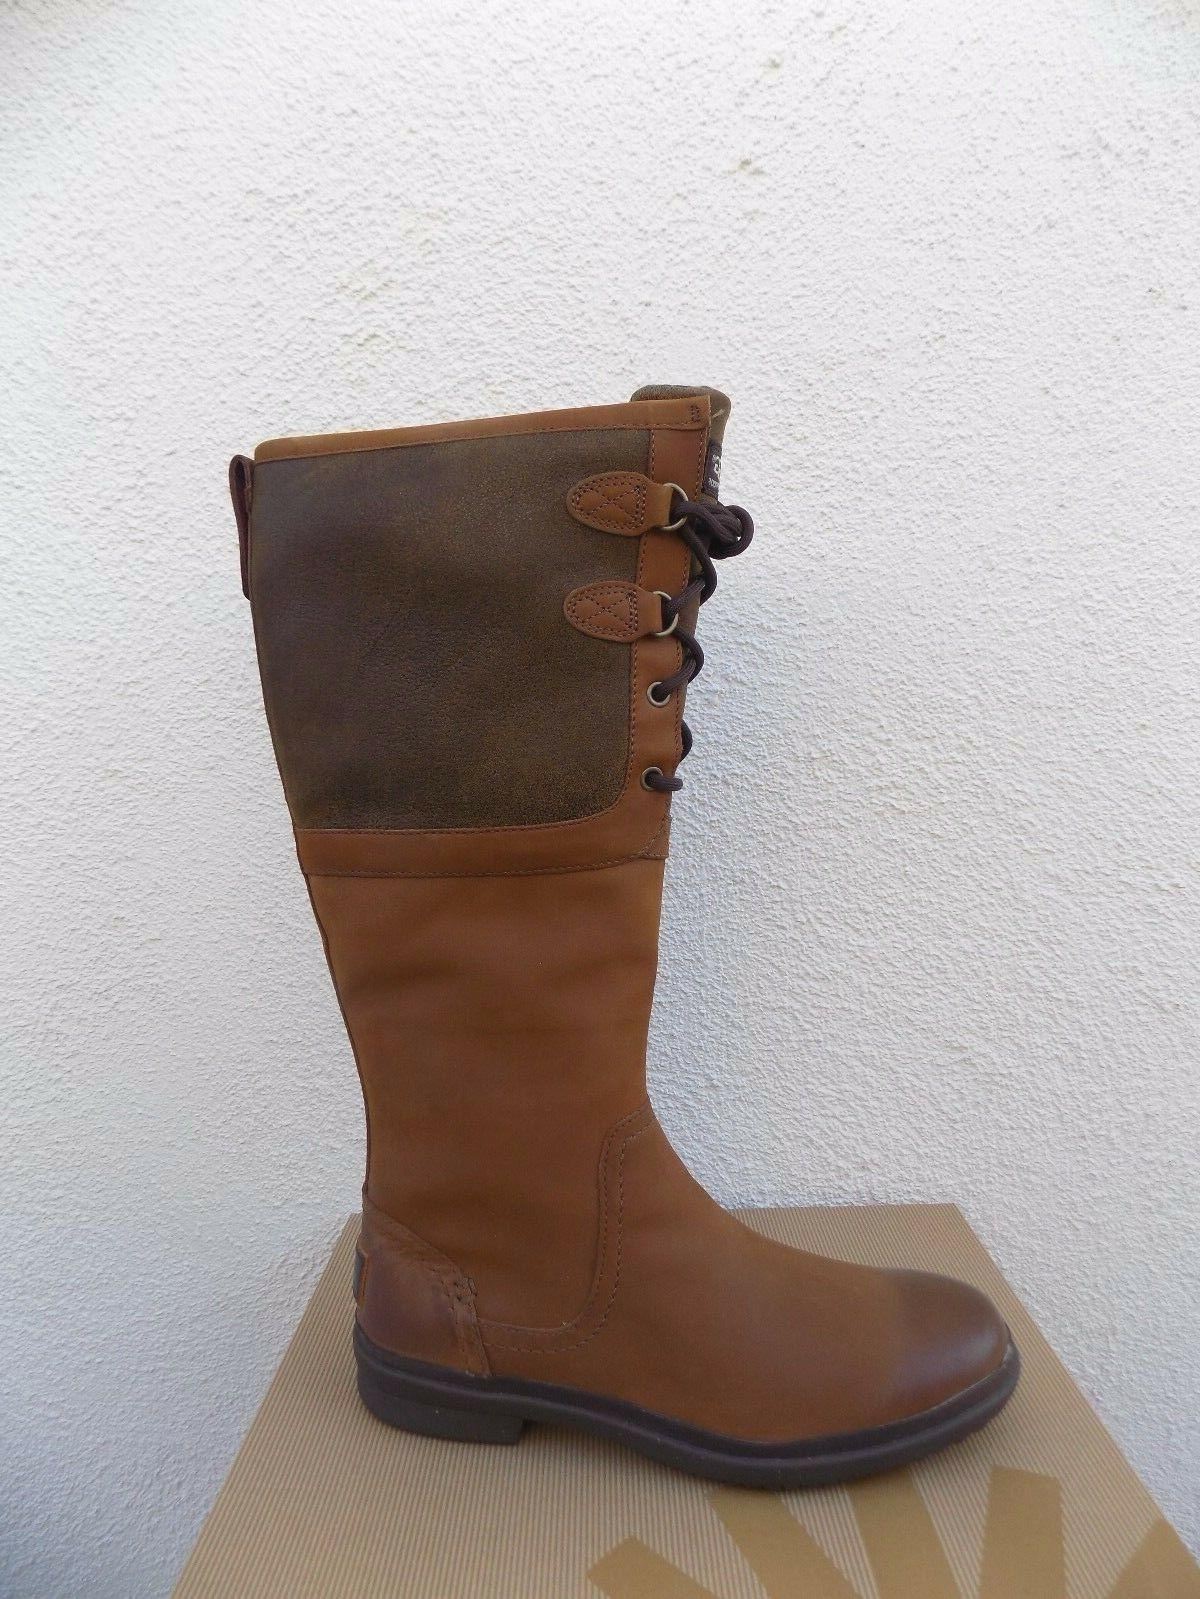 UGG WATERPROOF LEATHER BOOTS, US 37.5 NEW